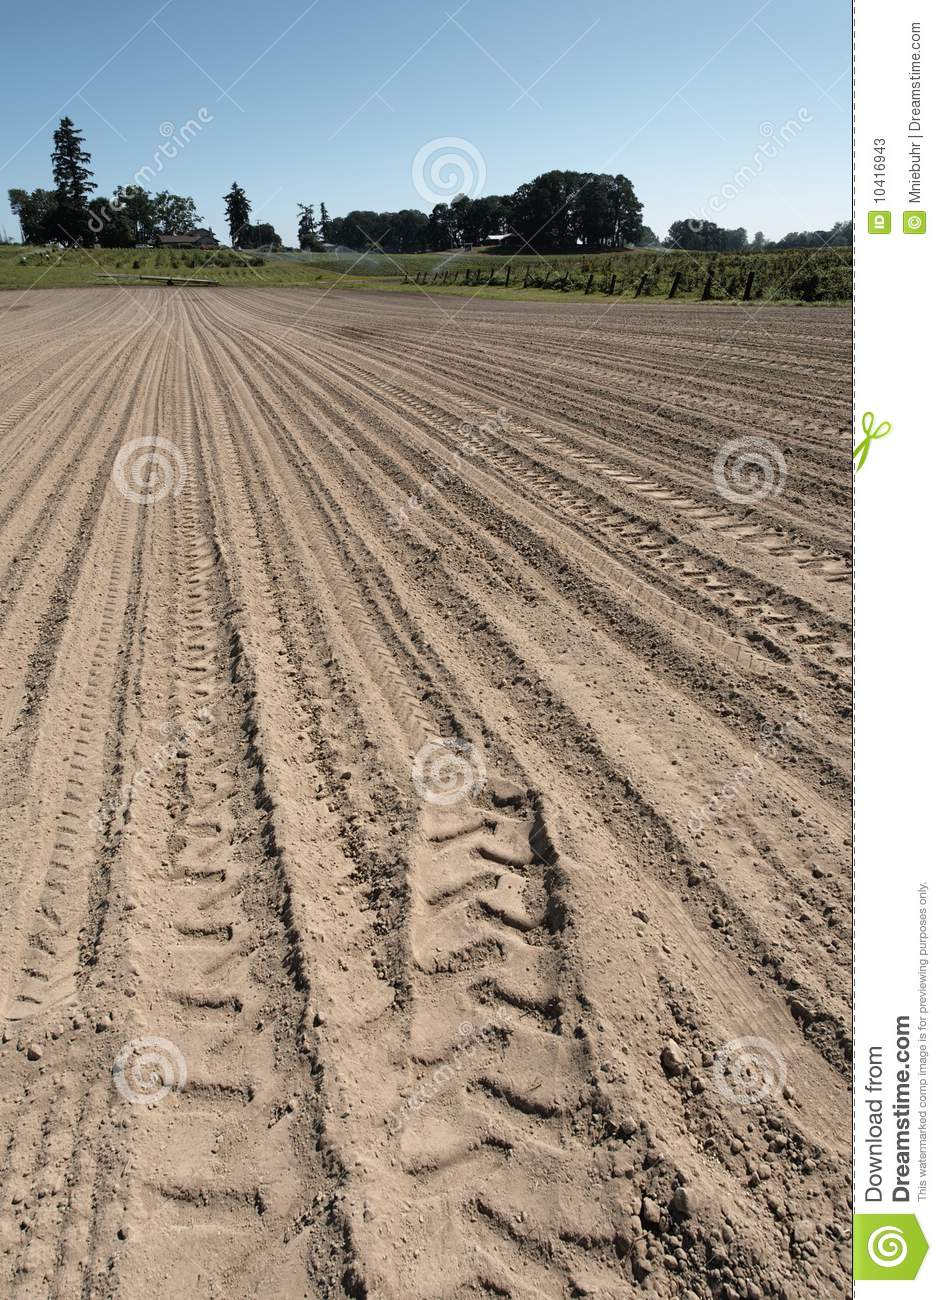 Farm Crop Field With Tracks Prepared For Planting Stock